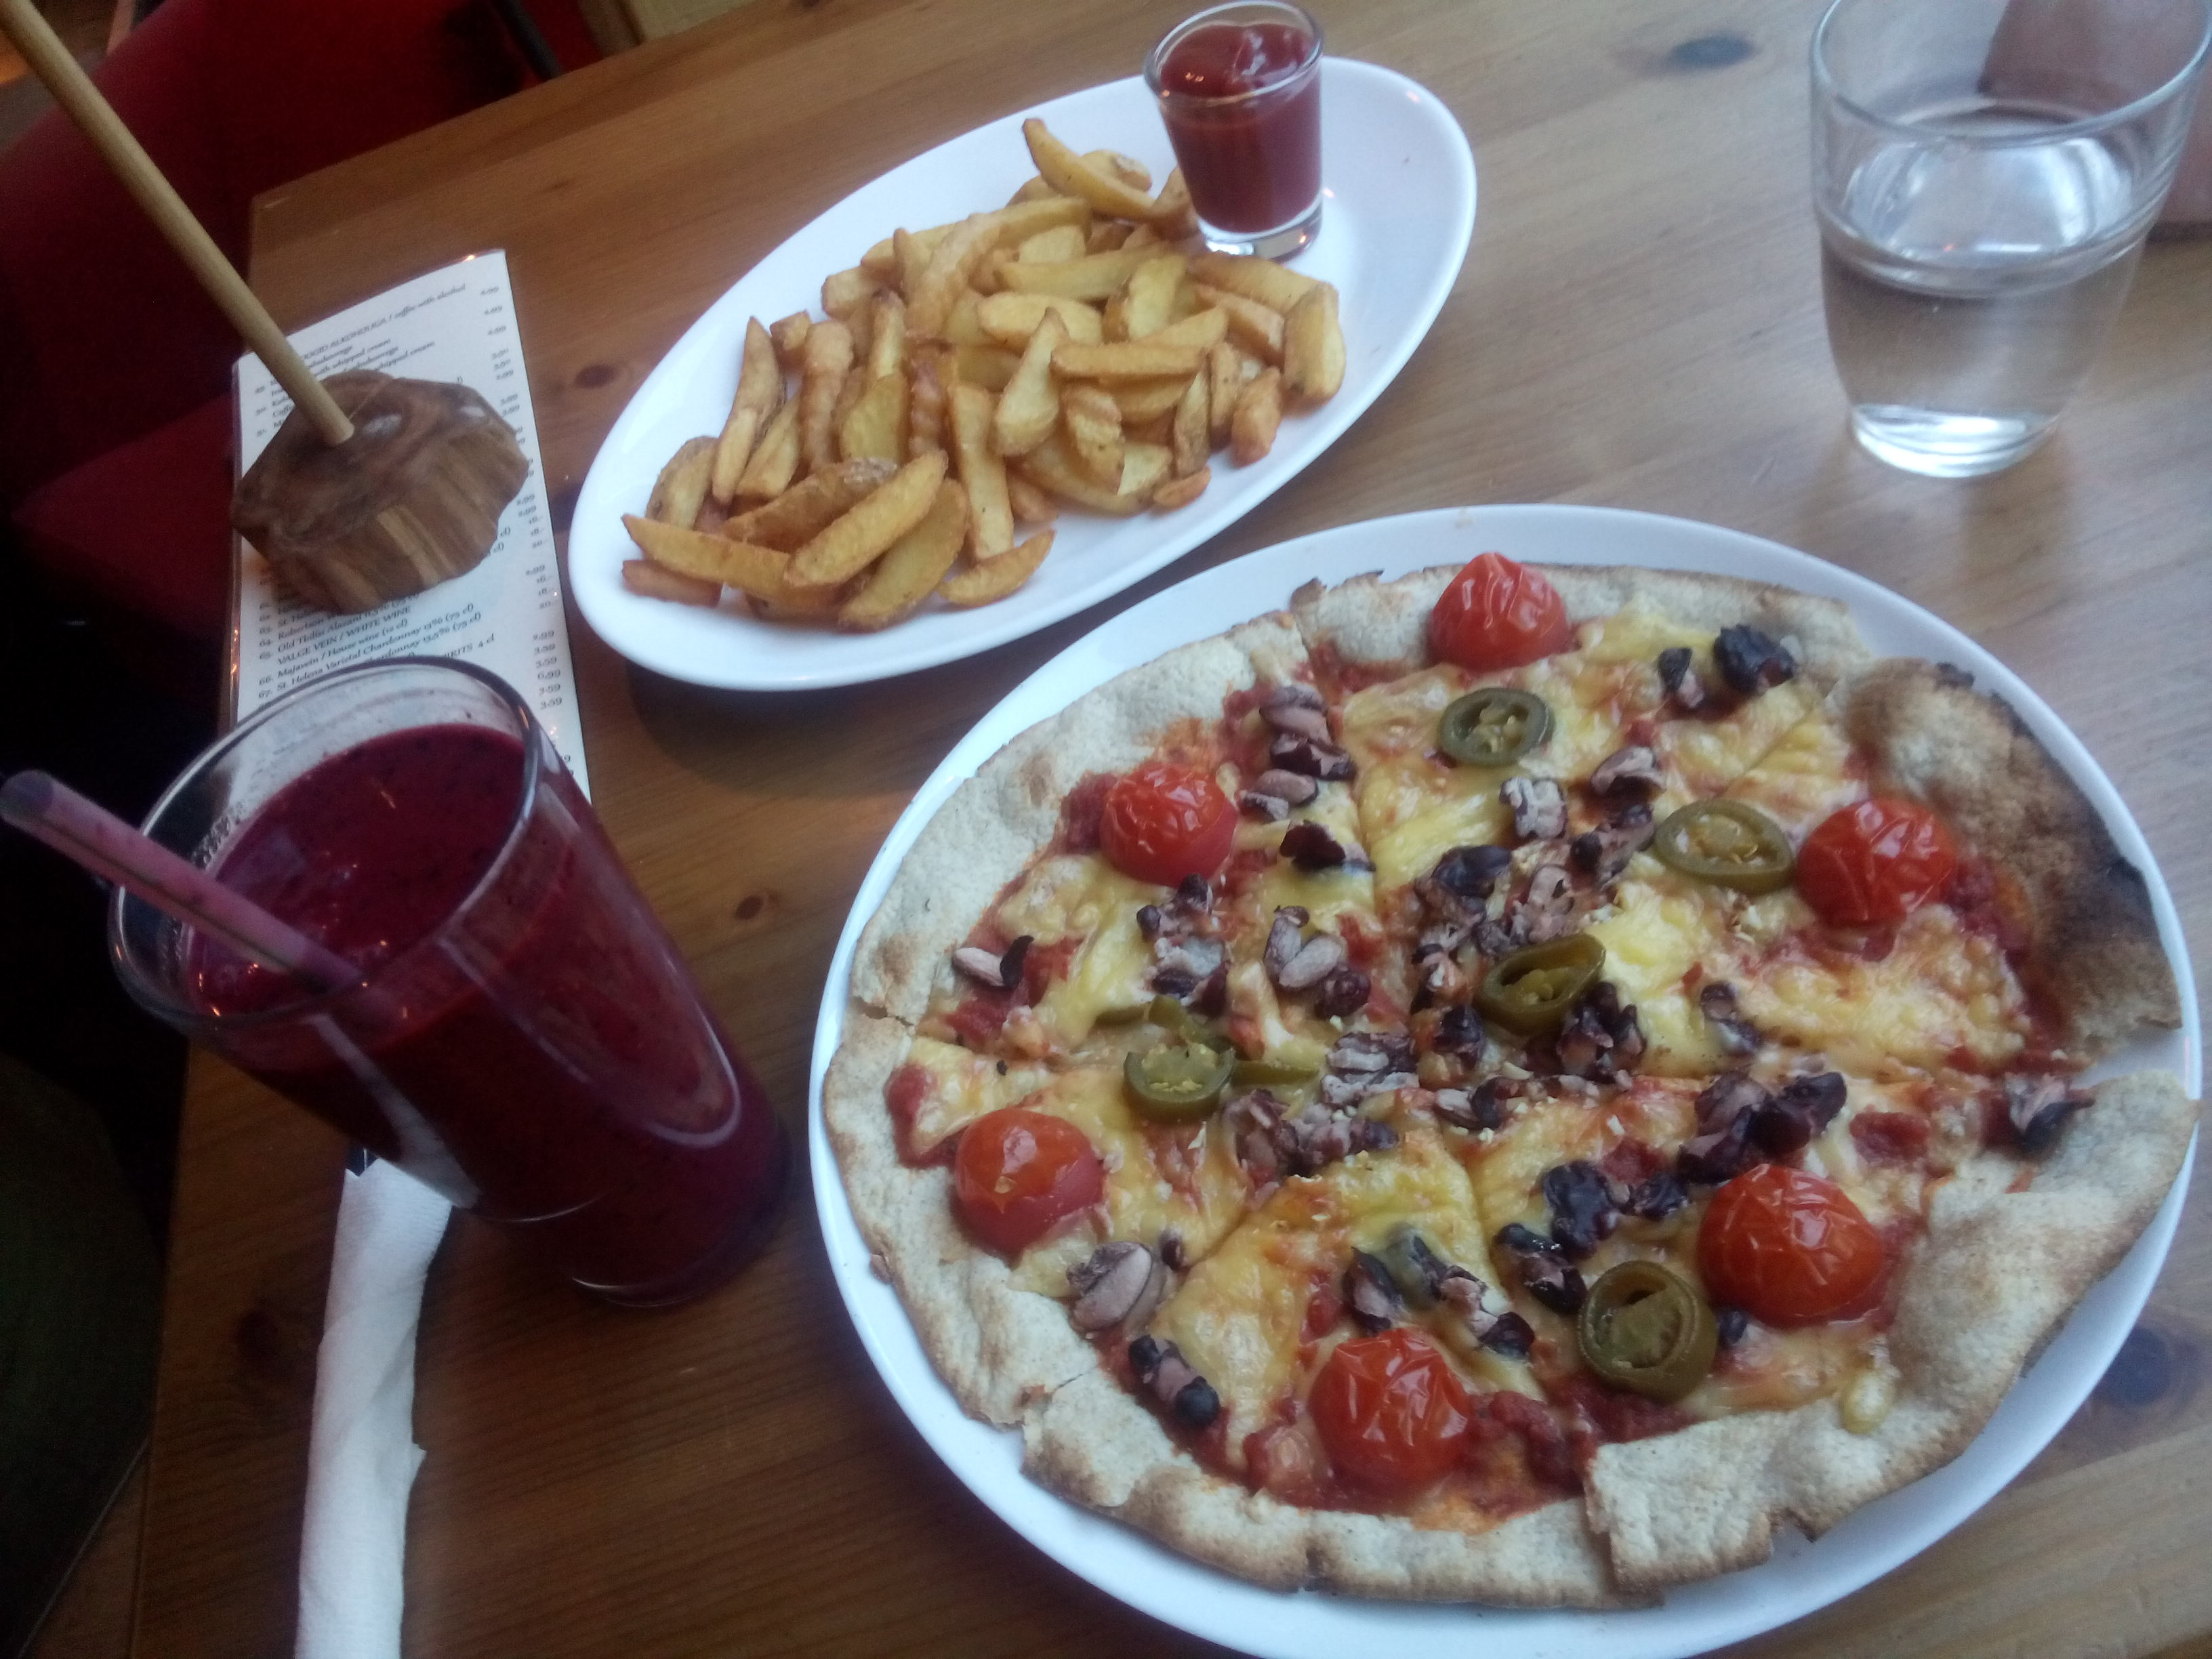 A wooden table with a purple smoothie in a glass, and two plates with fries and a pizza